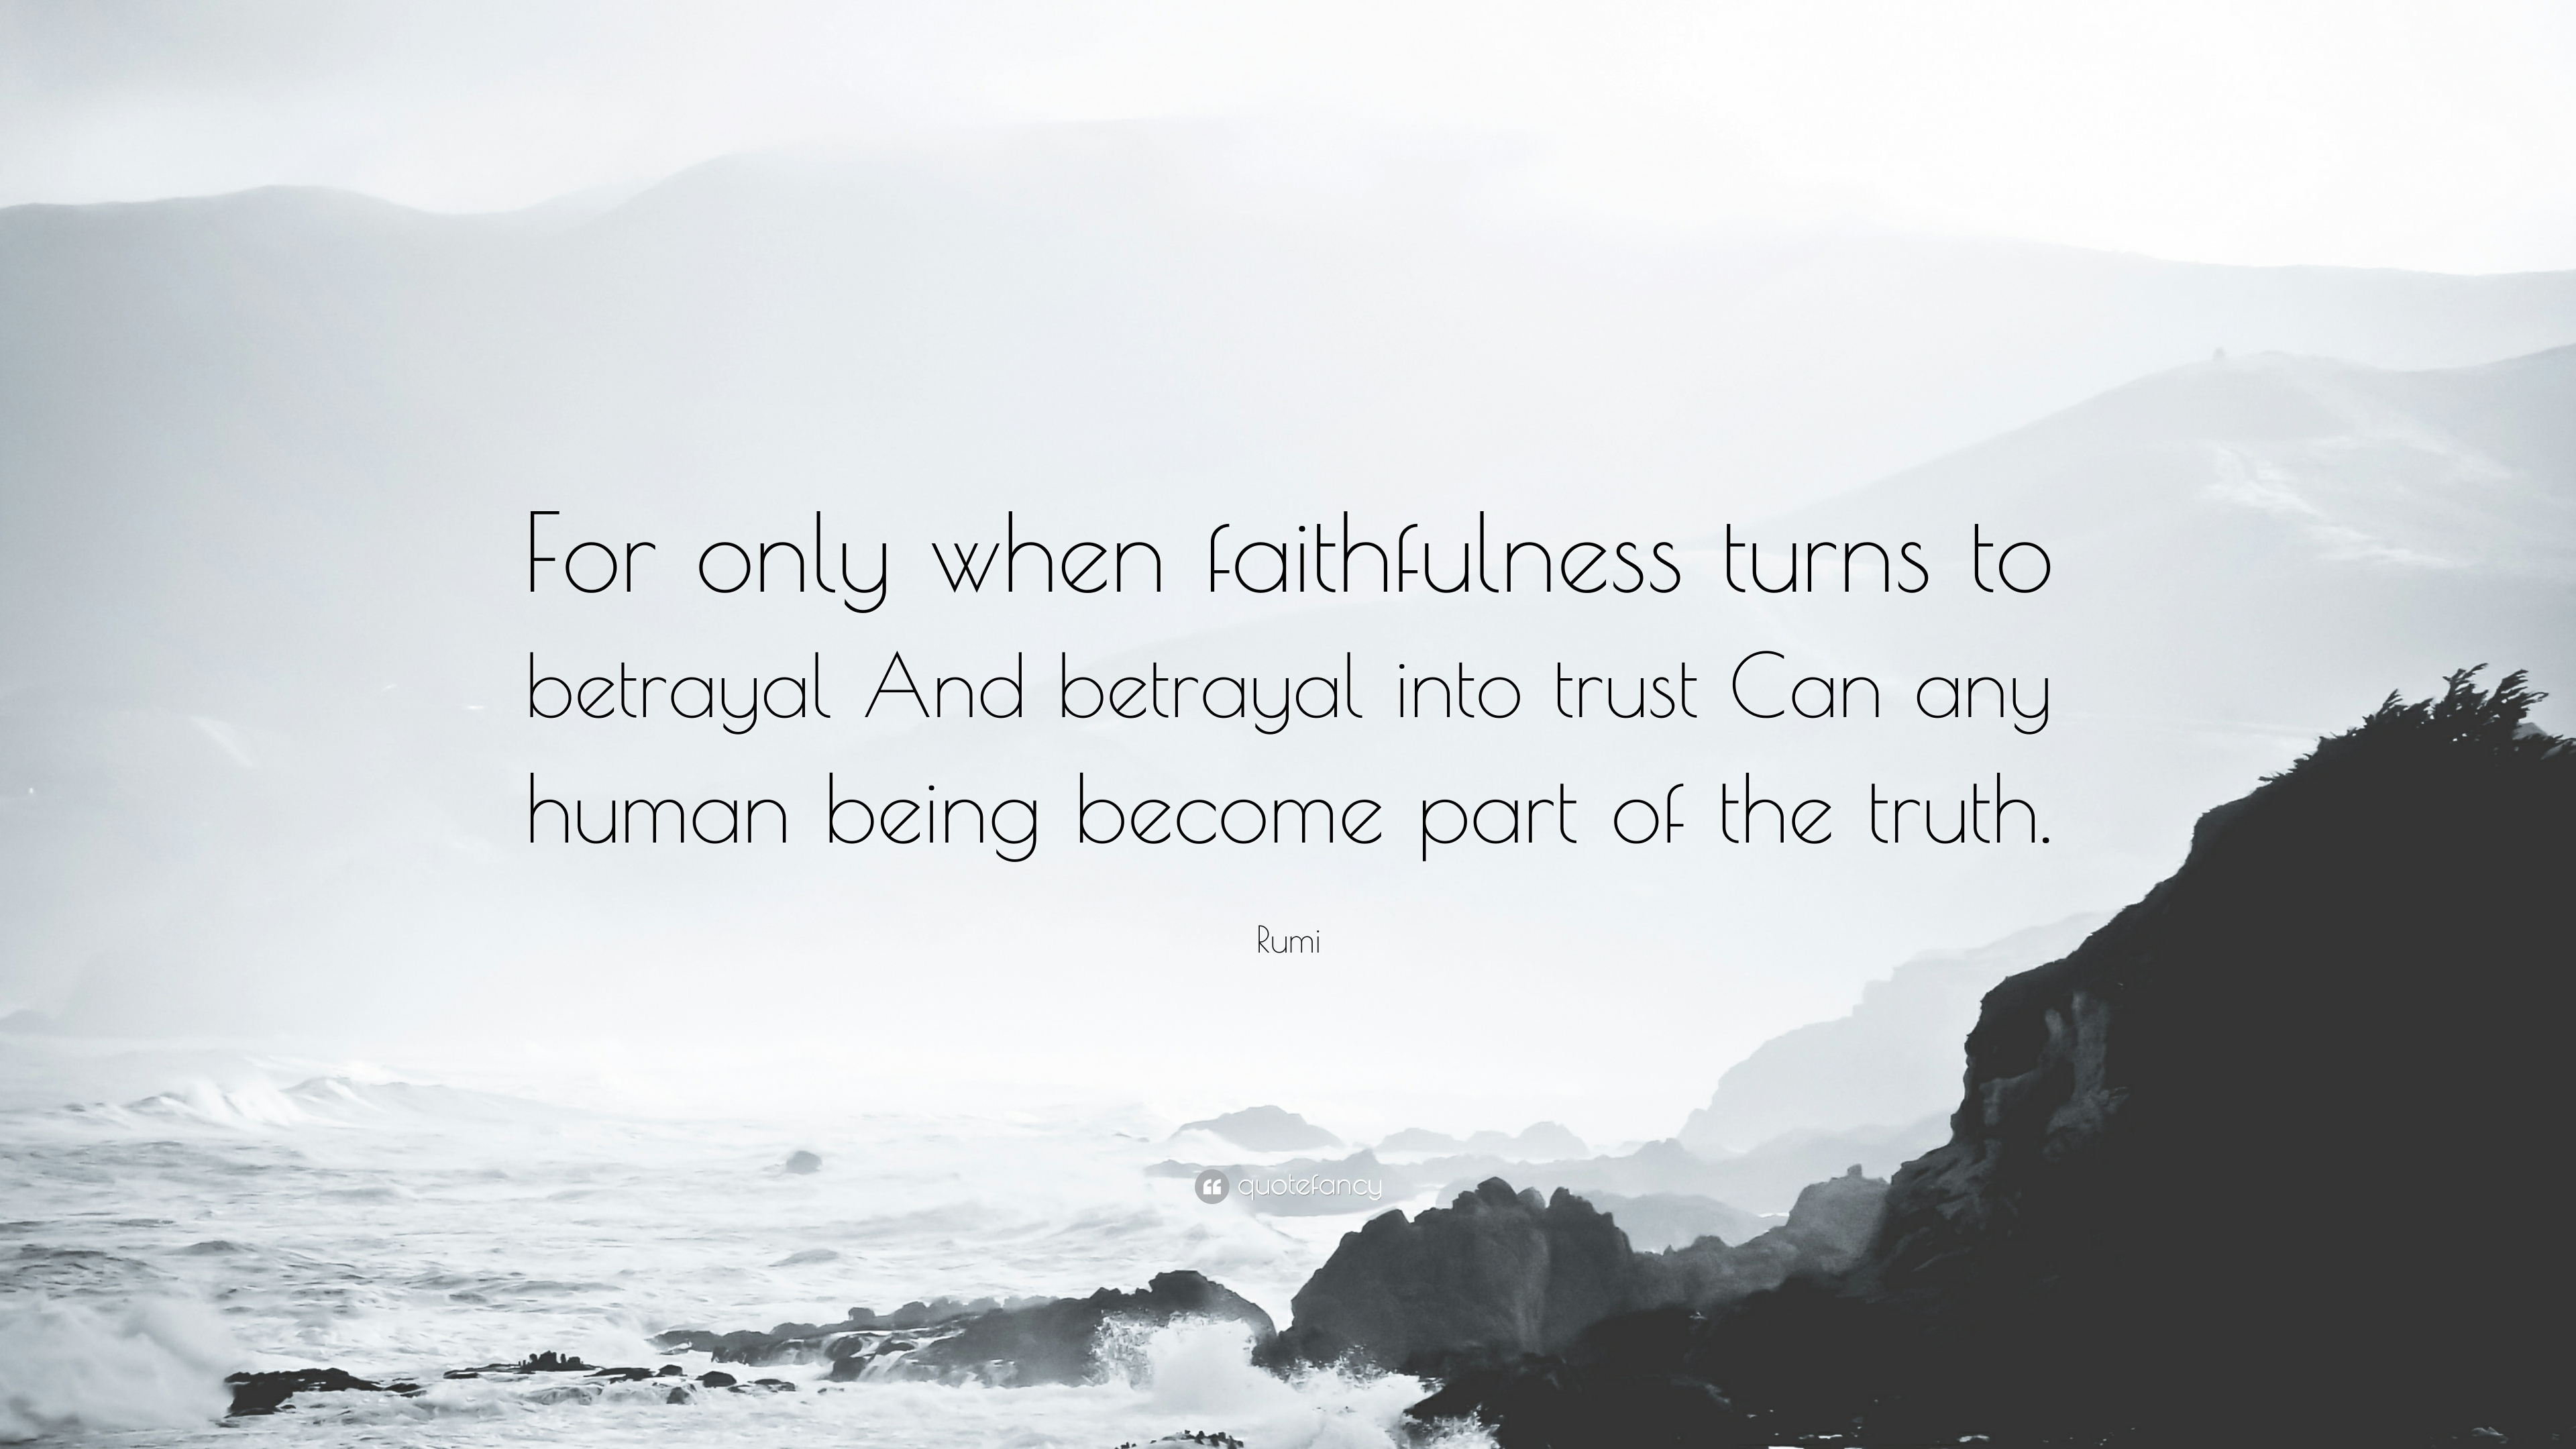 Quotes on betrayal and trust - Rumi Quote For Only When Faithfulness Turns To Betrayal And Betrayal Into Trust Can